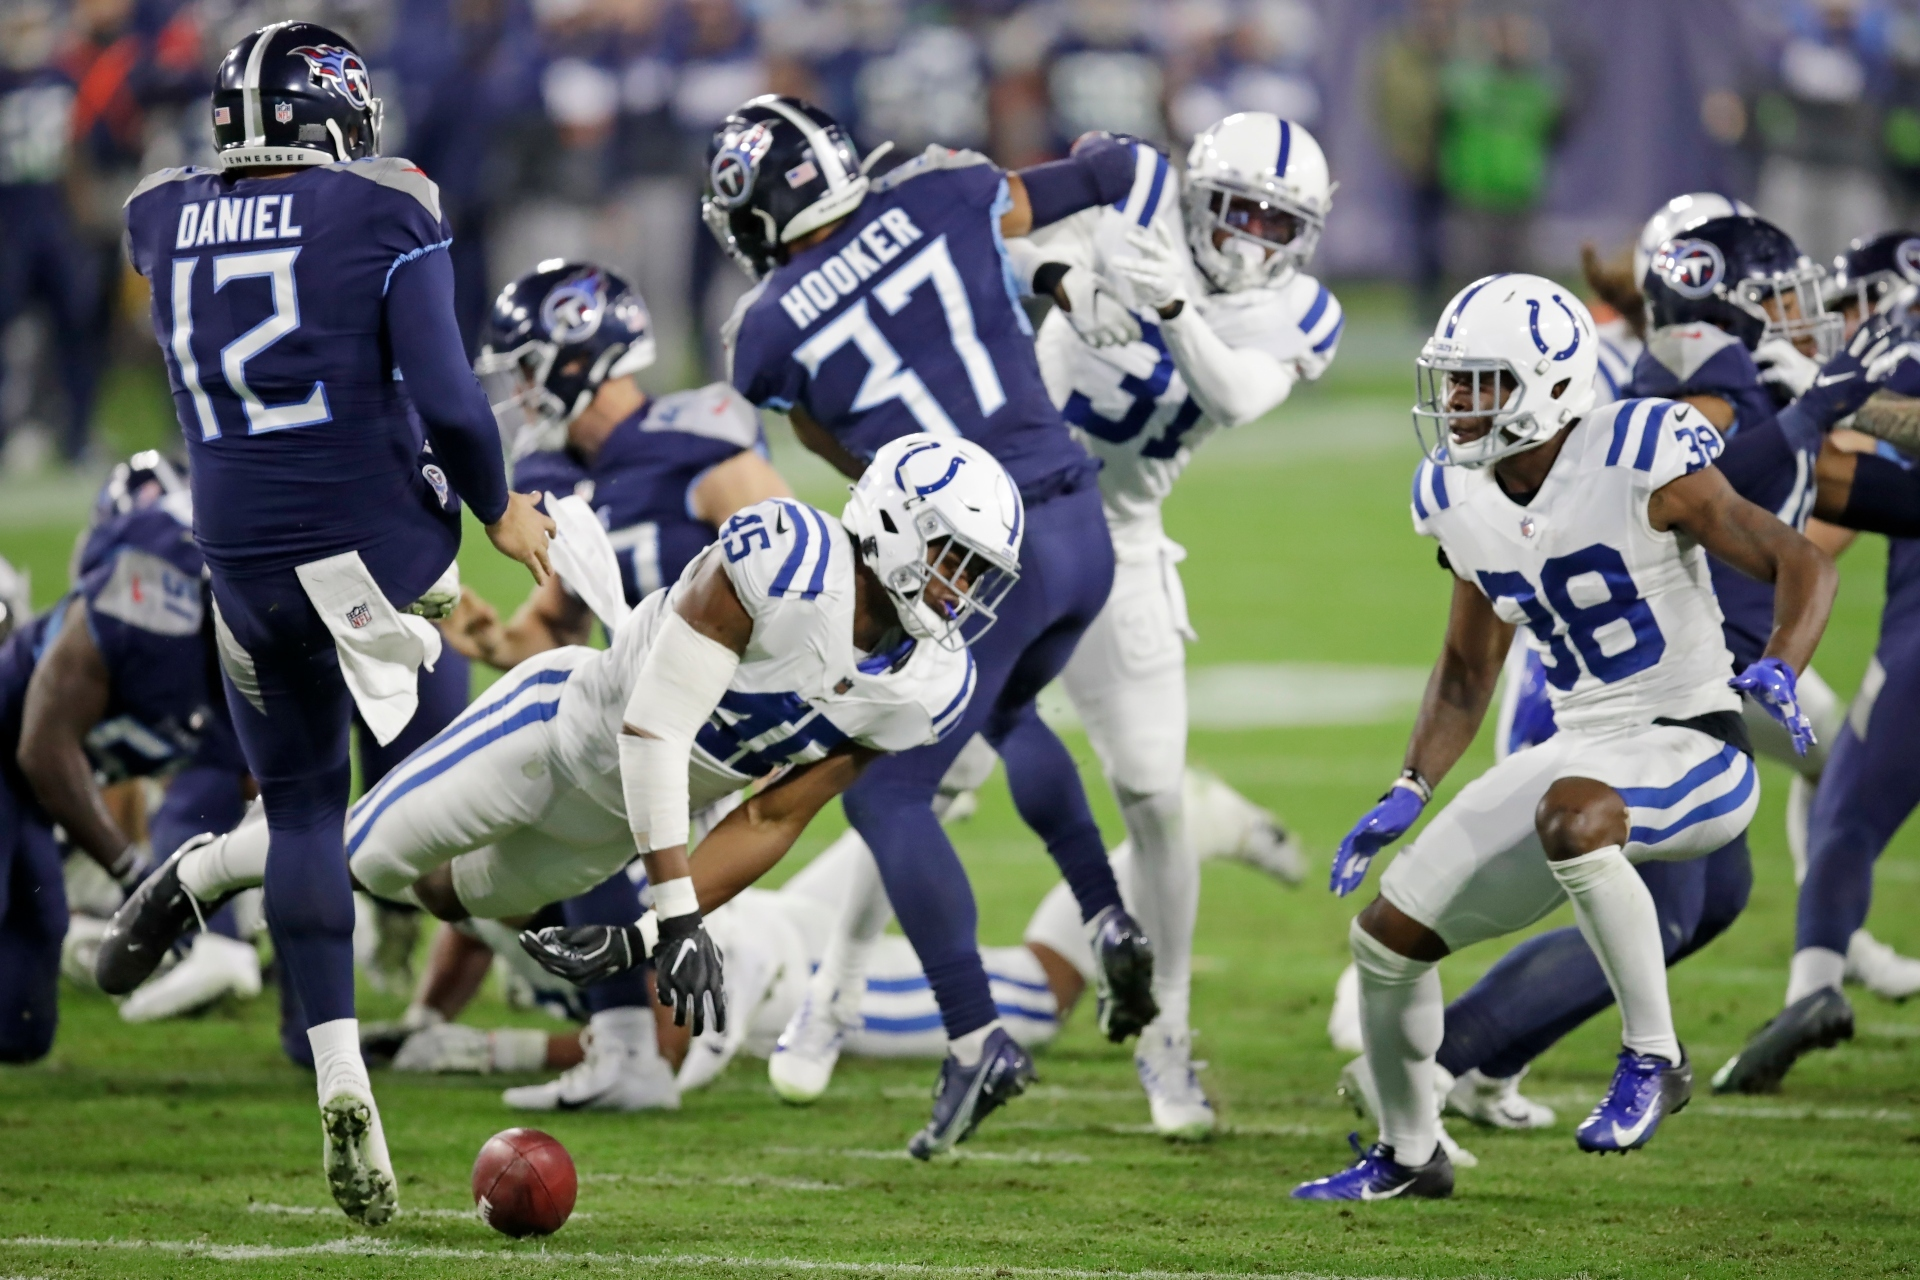 The Colts come back to beat Tennessee 34-17.